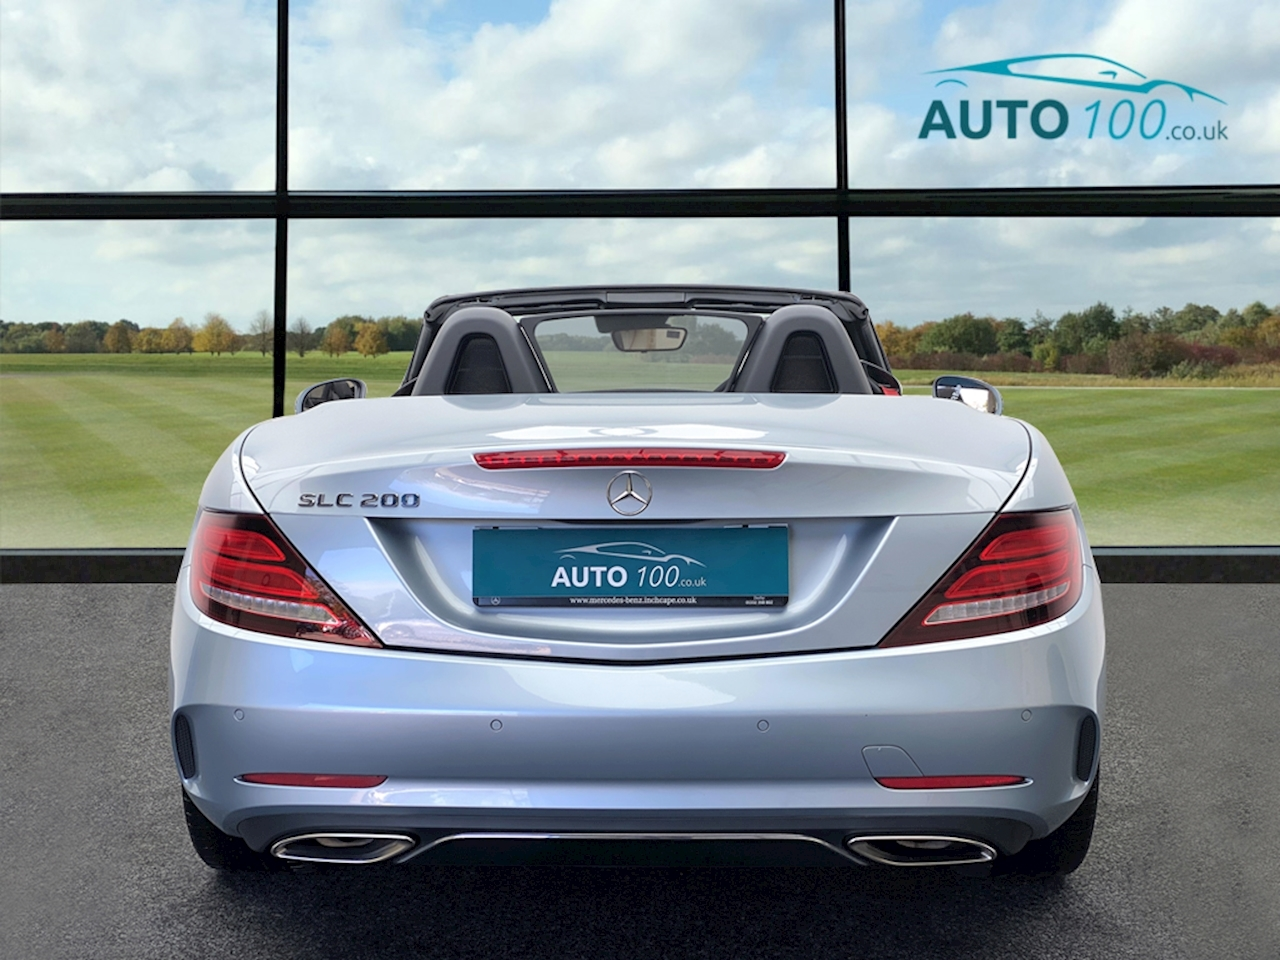 Mercedes-Benz Slc Slc 200 Amg Line Convertible 2.0 Automatic Petrol